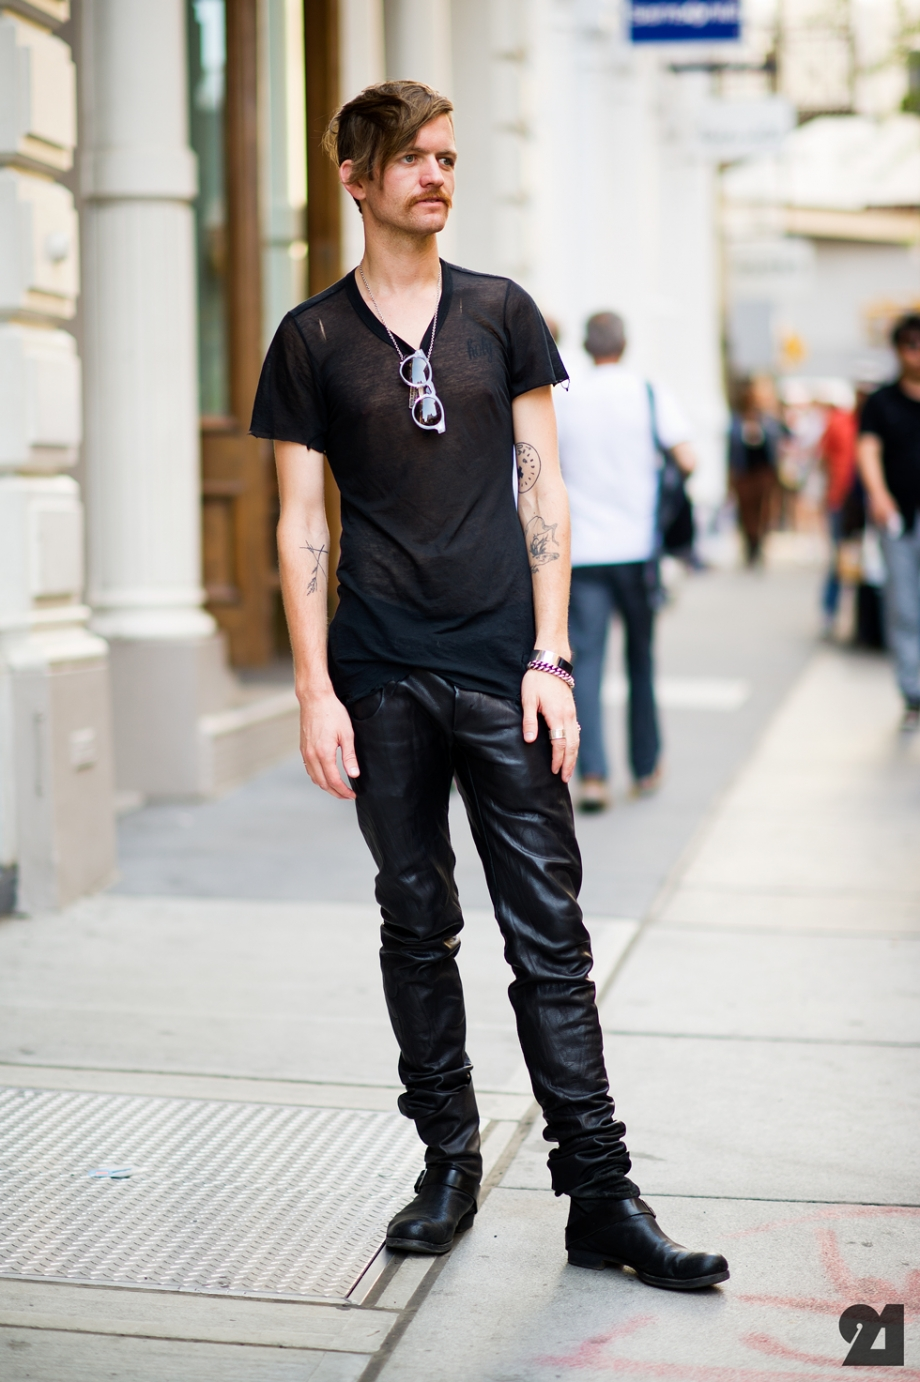 1638-Le-21eme-Adam-Katz-Sinding-Andrew-Dryden-SoHo-New-York-City-Street-Style-Fashion-Blog_21E9489-920x1382.jpg